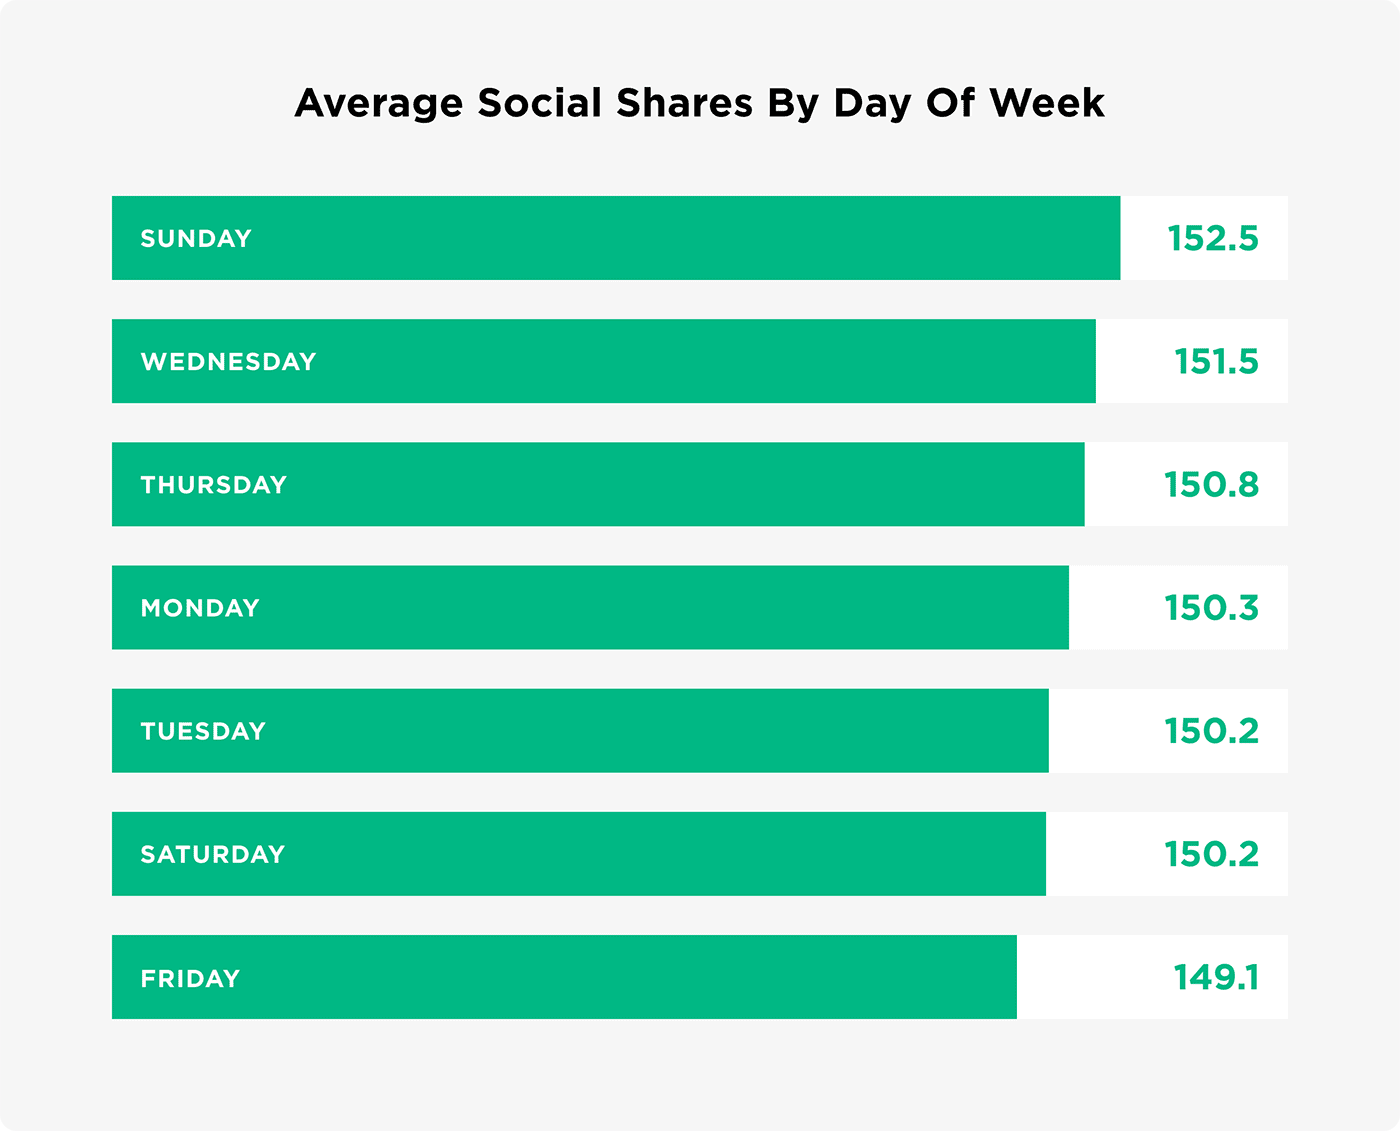 Average social shares by day of week